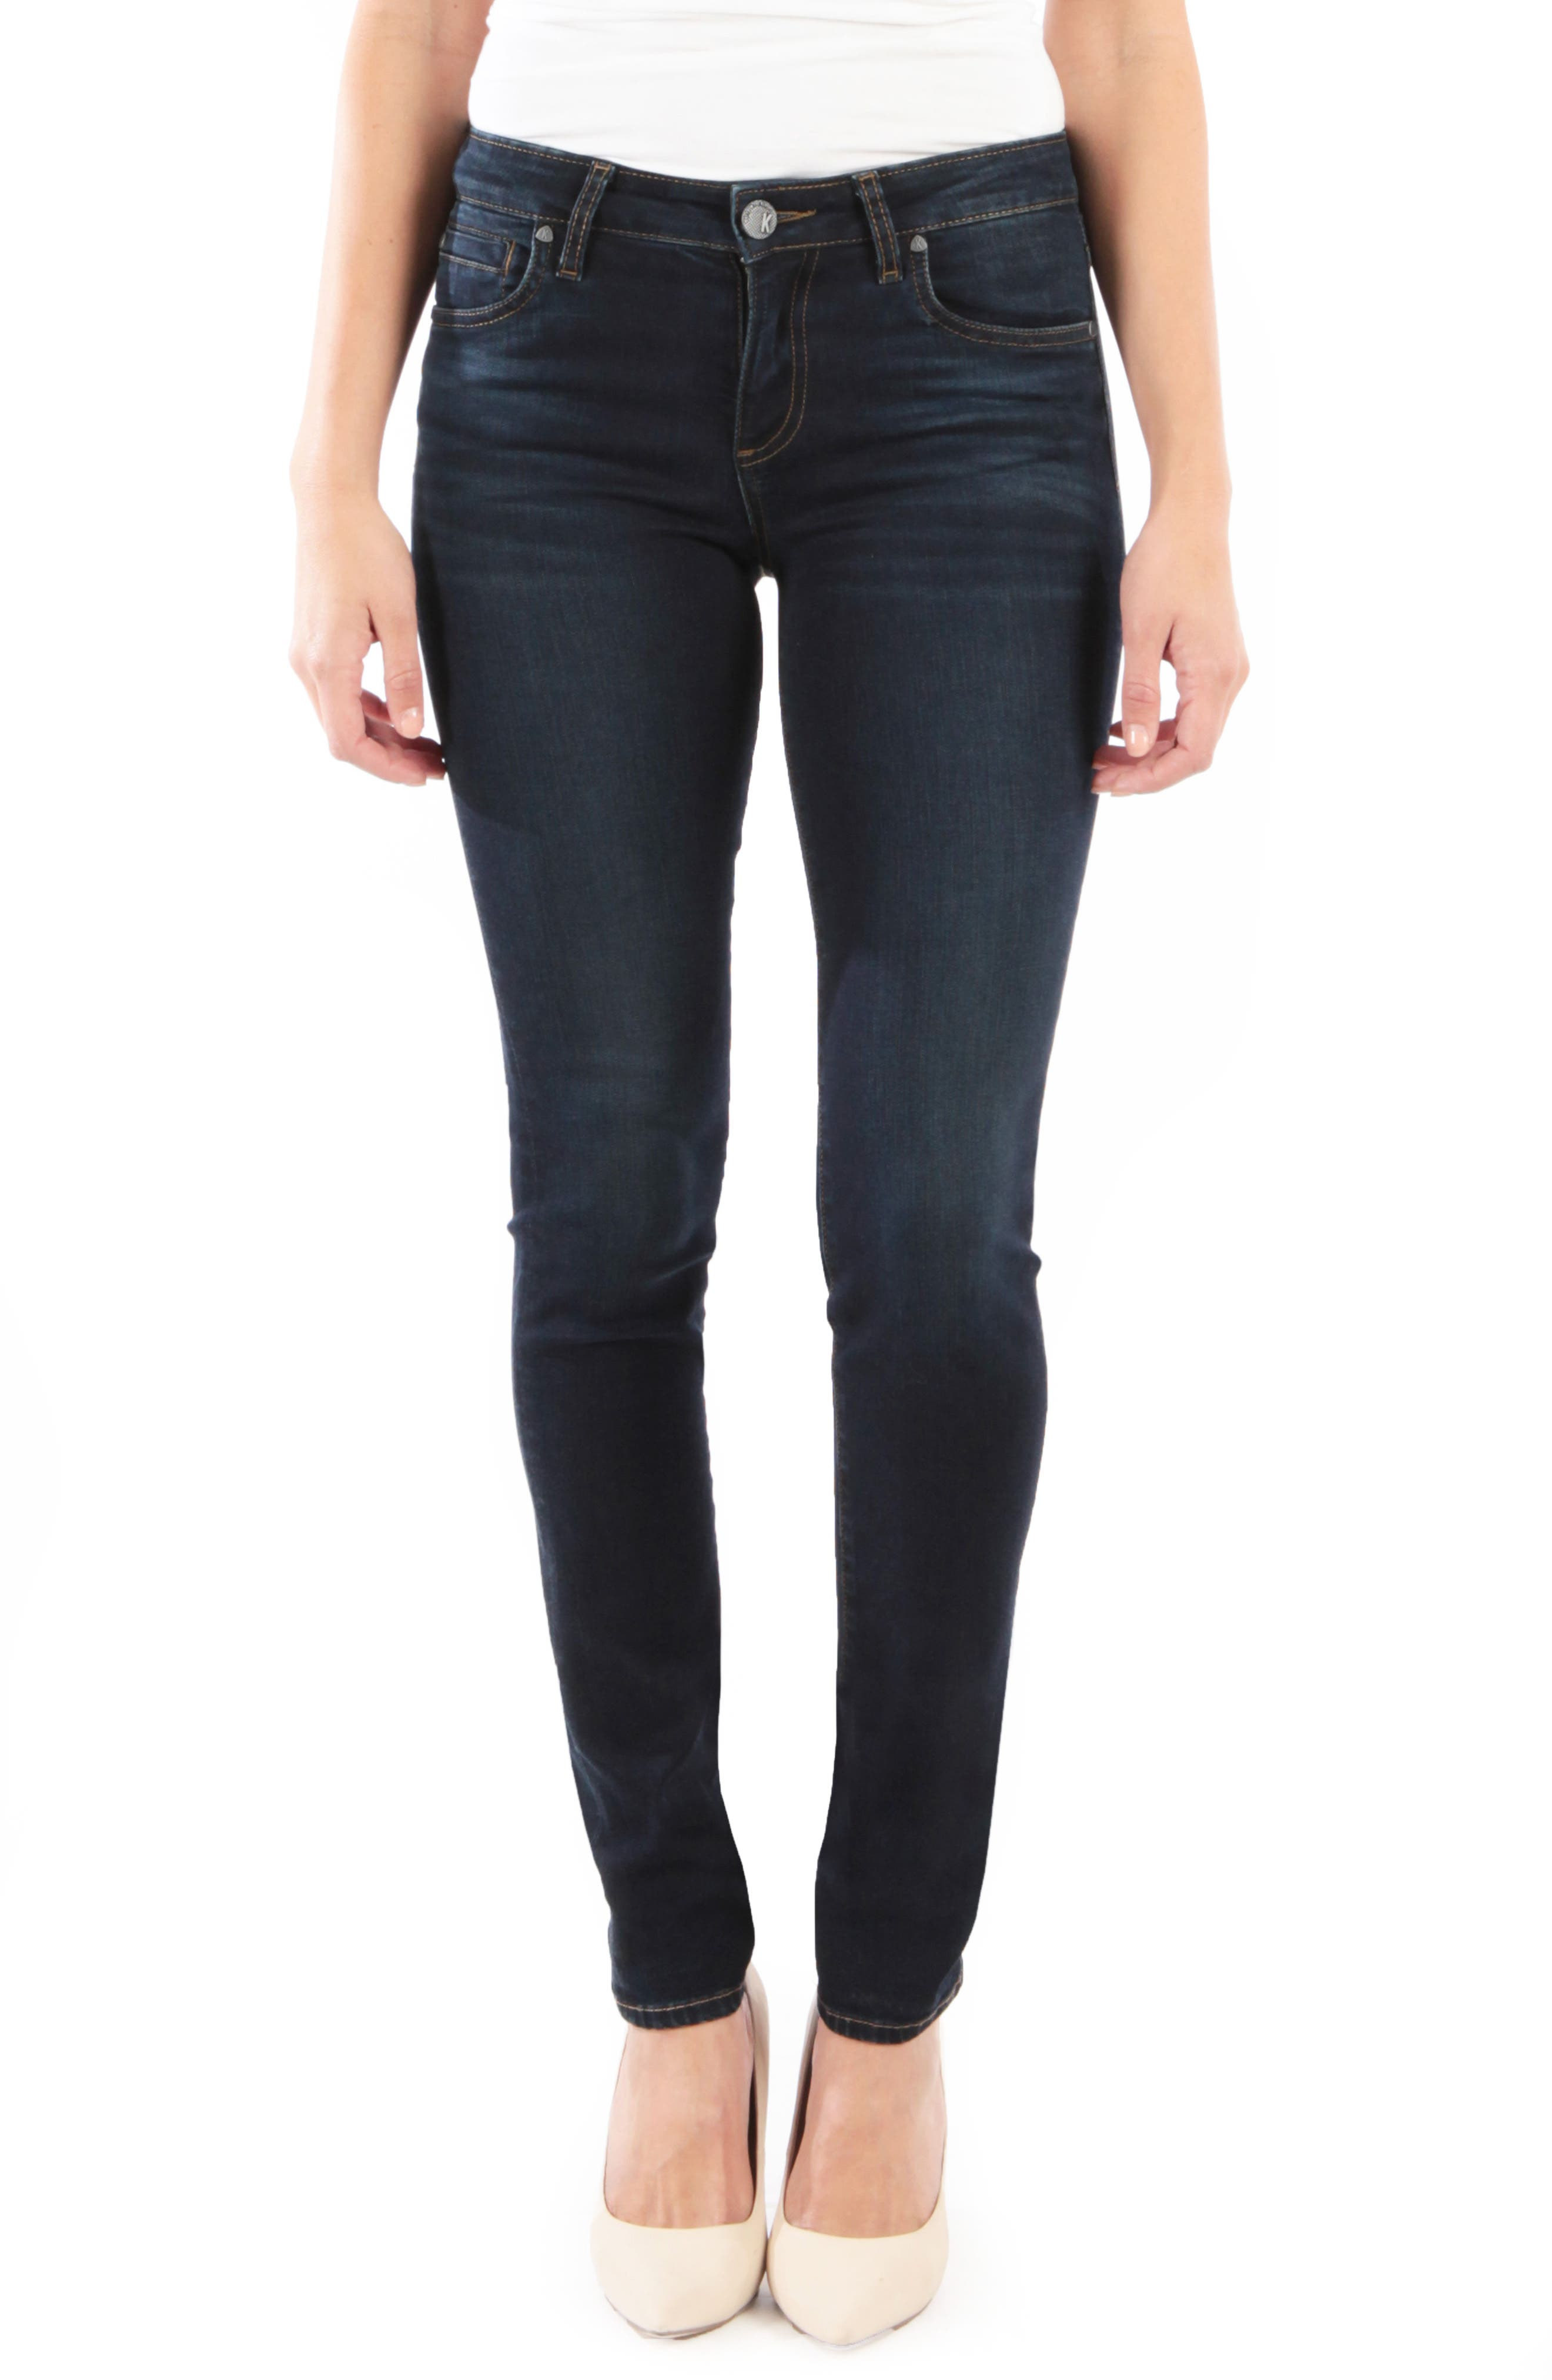 Petite Kut From The Kloth Diana Skinny Jeans, Blue